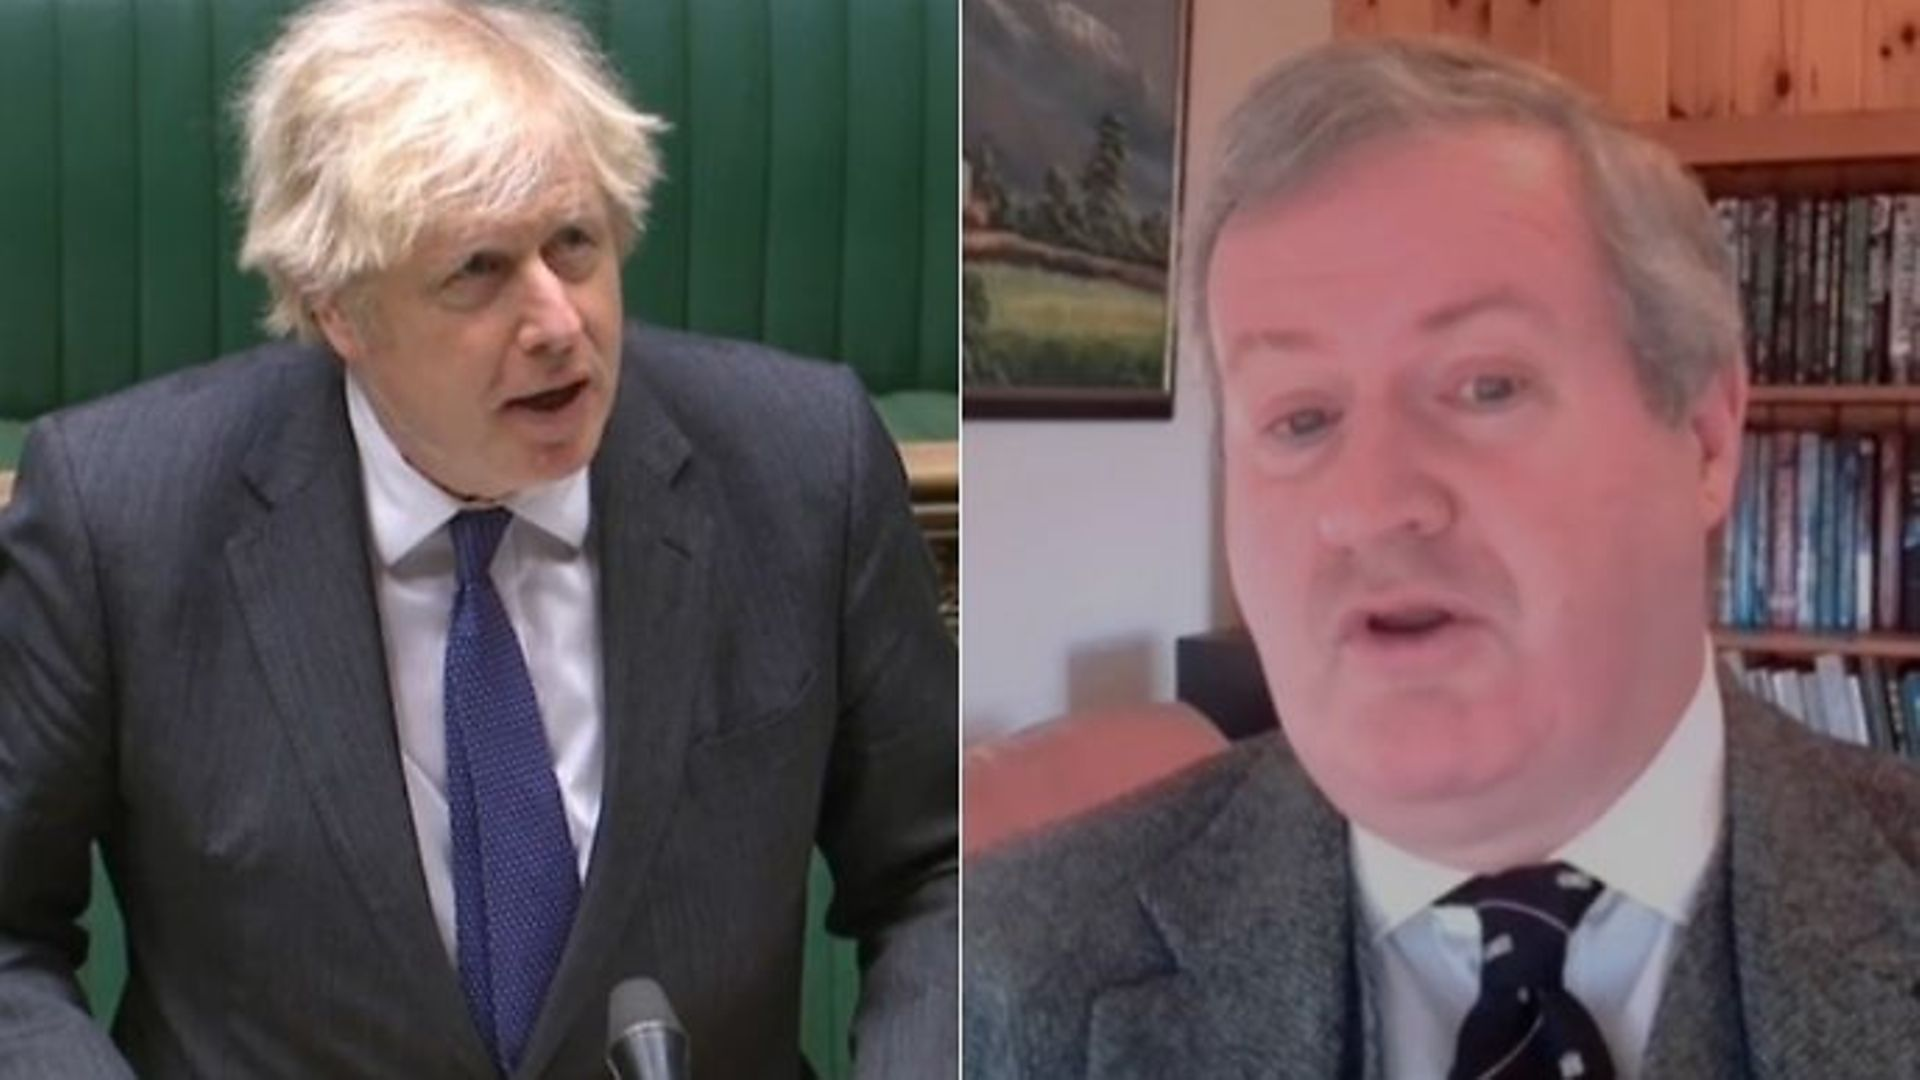 Boris Johnson (L) and SNP Commons leader Ian Blackford during Prime Minister's Questions - Credit: Parliamentlive.tv